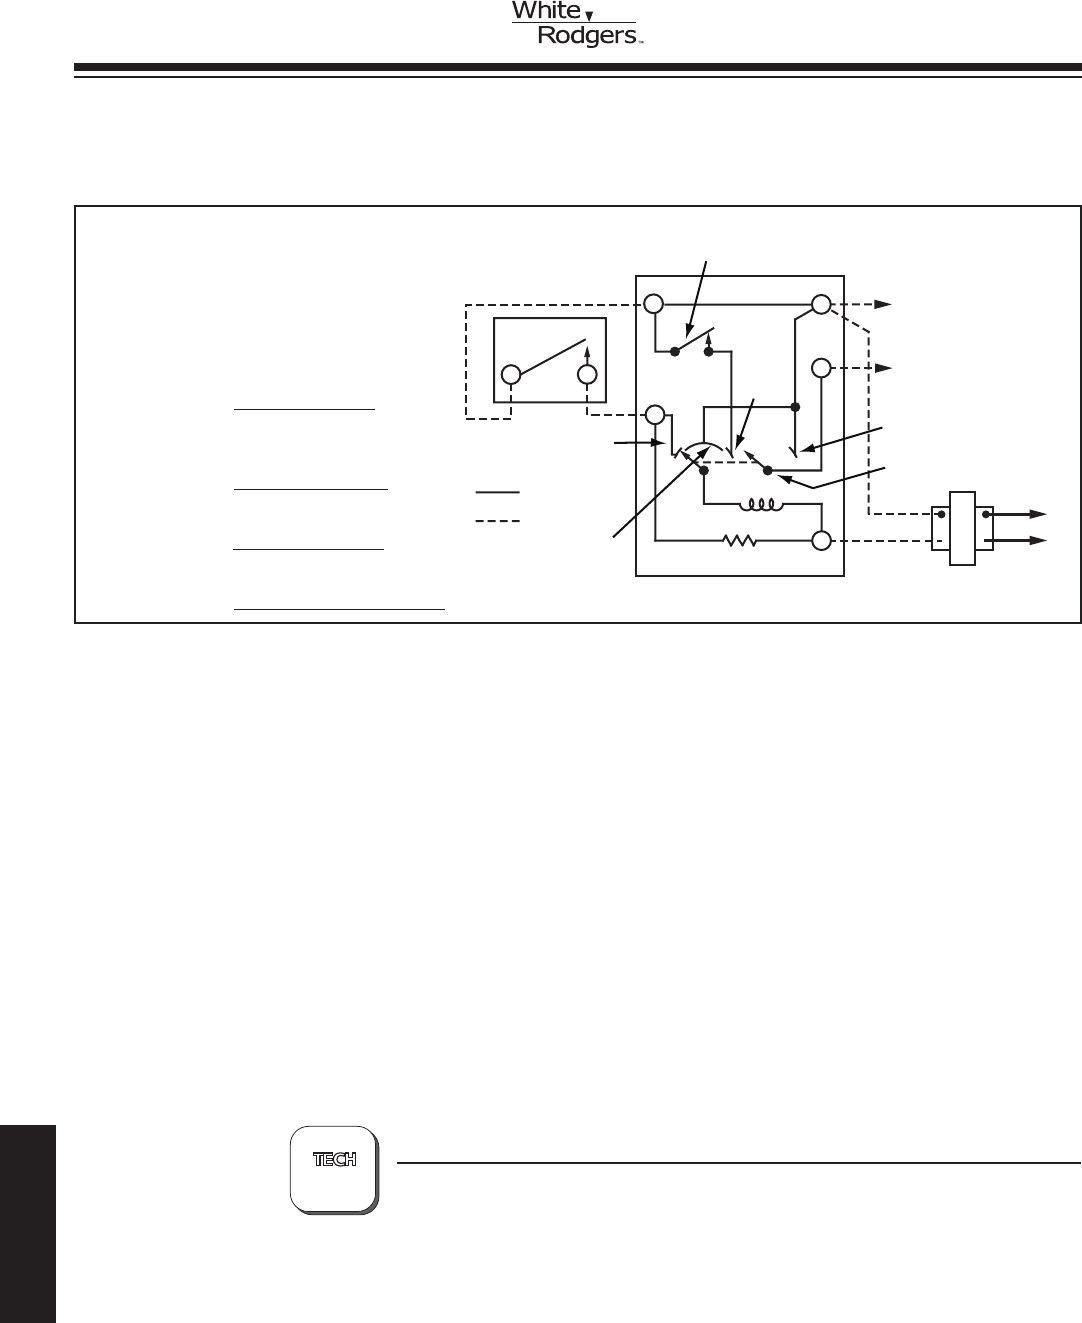 hight resolution of white rodgers zone valve wiring diagram free wiring diagram older gas furnace transformer wiring white rodgers gas valve wiring